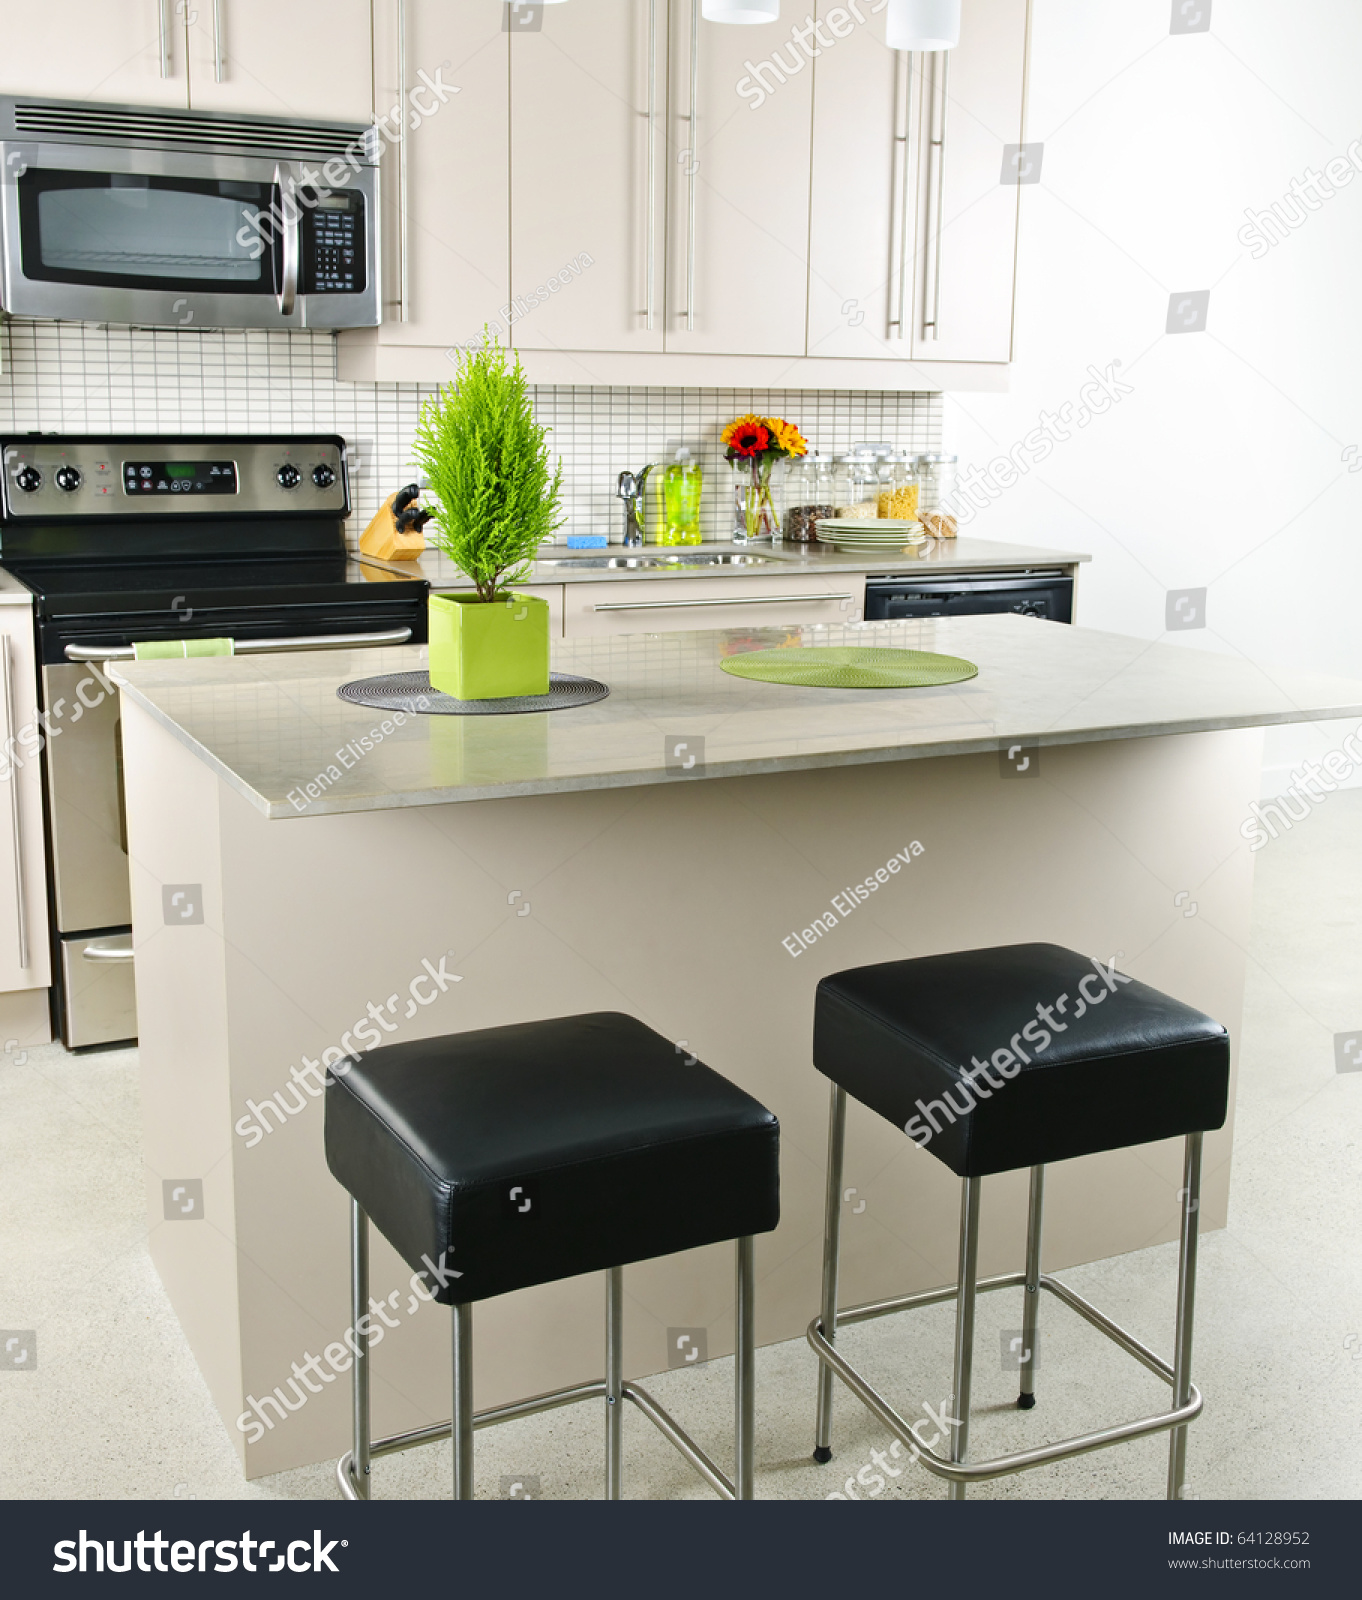 Natural Stone Kitchen Countertops: Modern Kitchen Interior With Island And Natural Stone